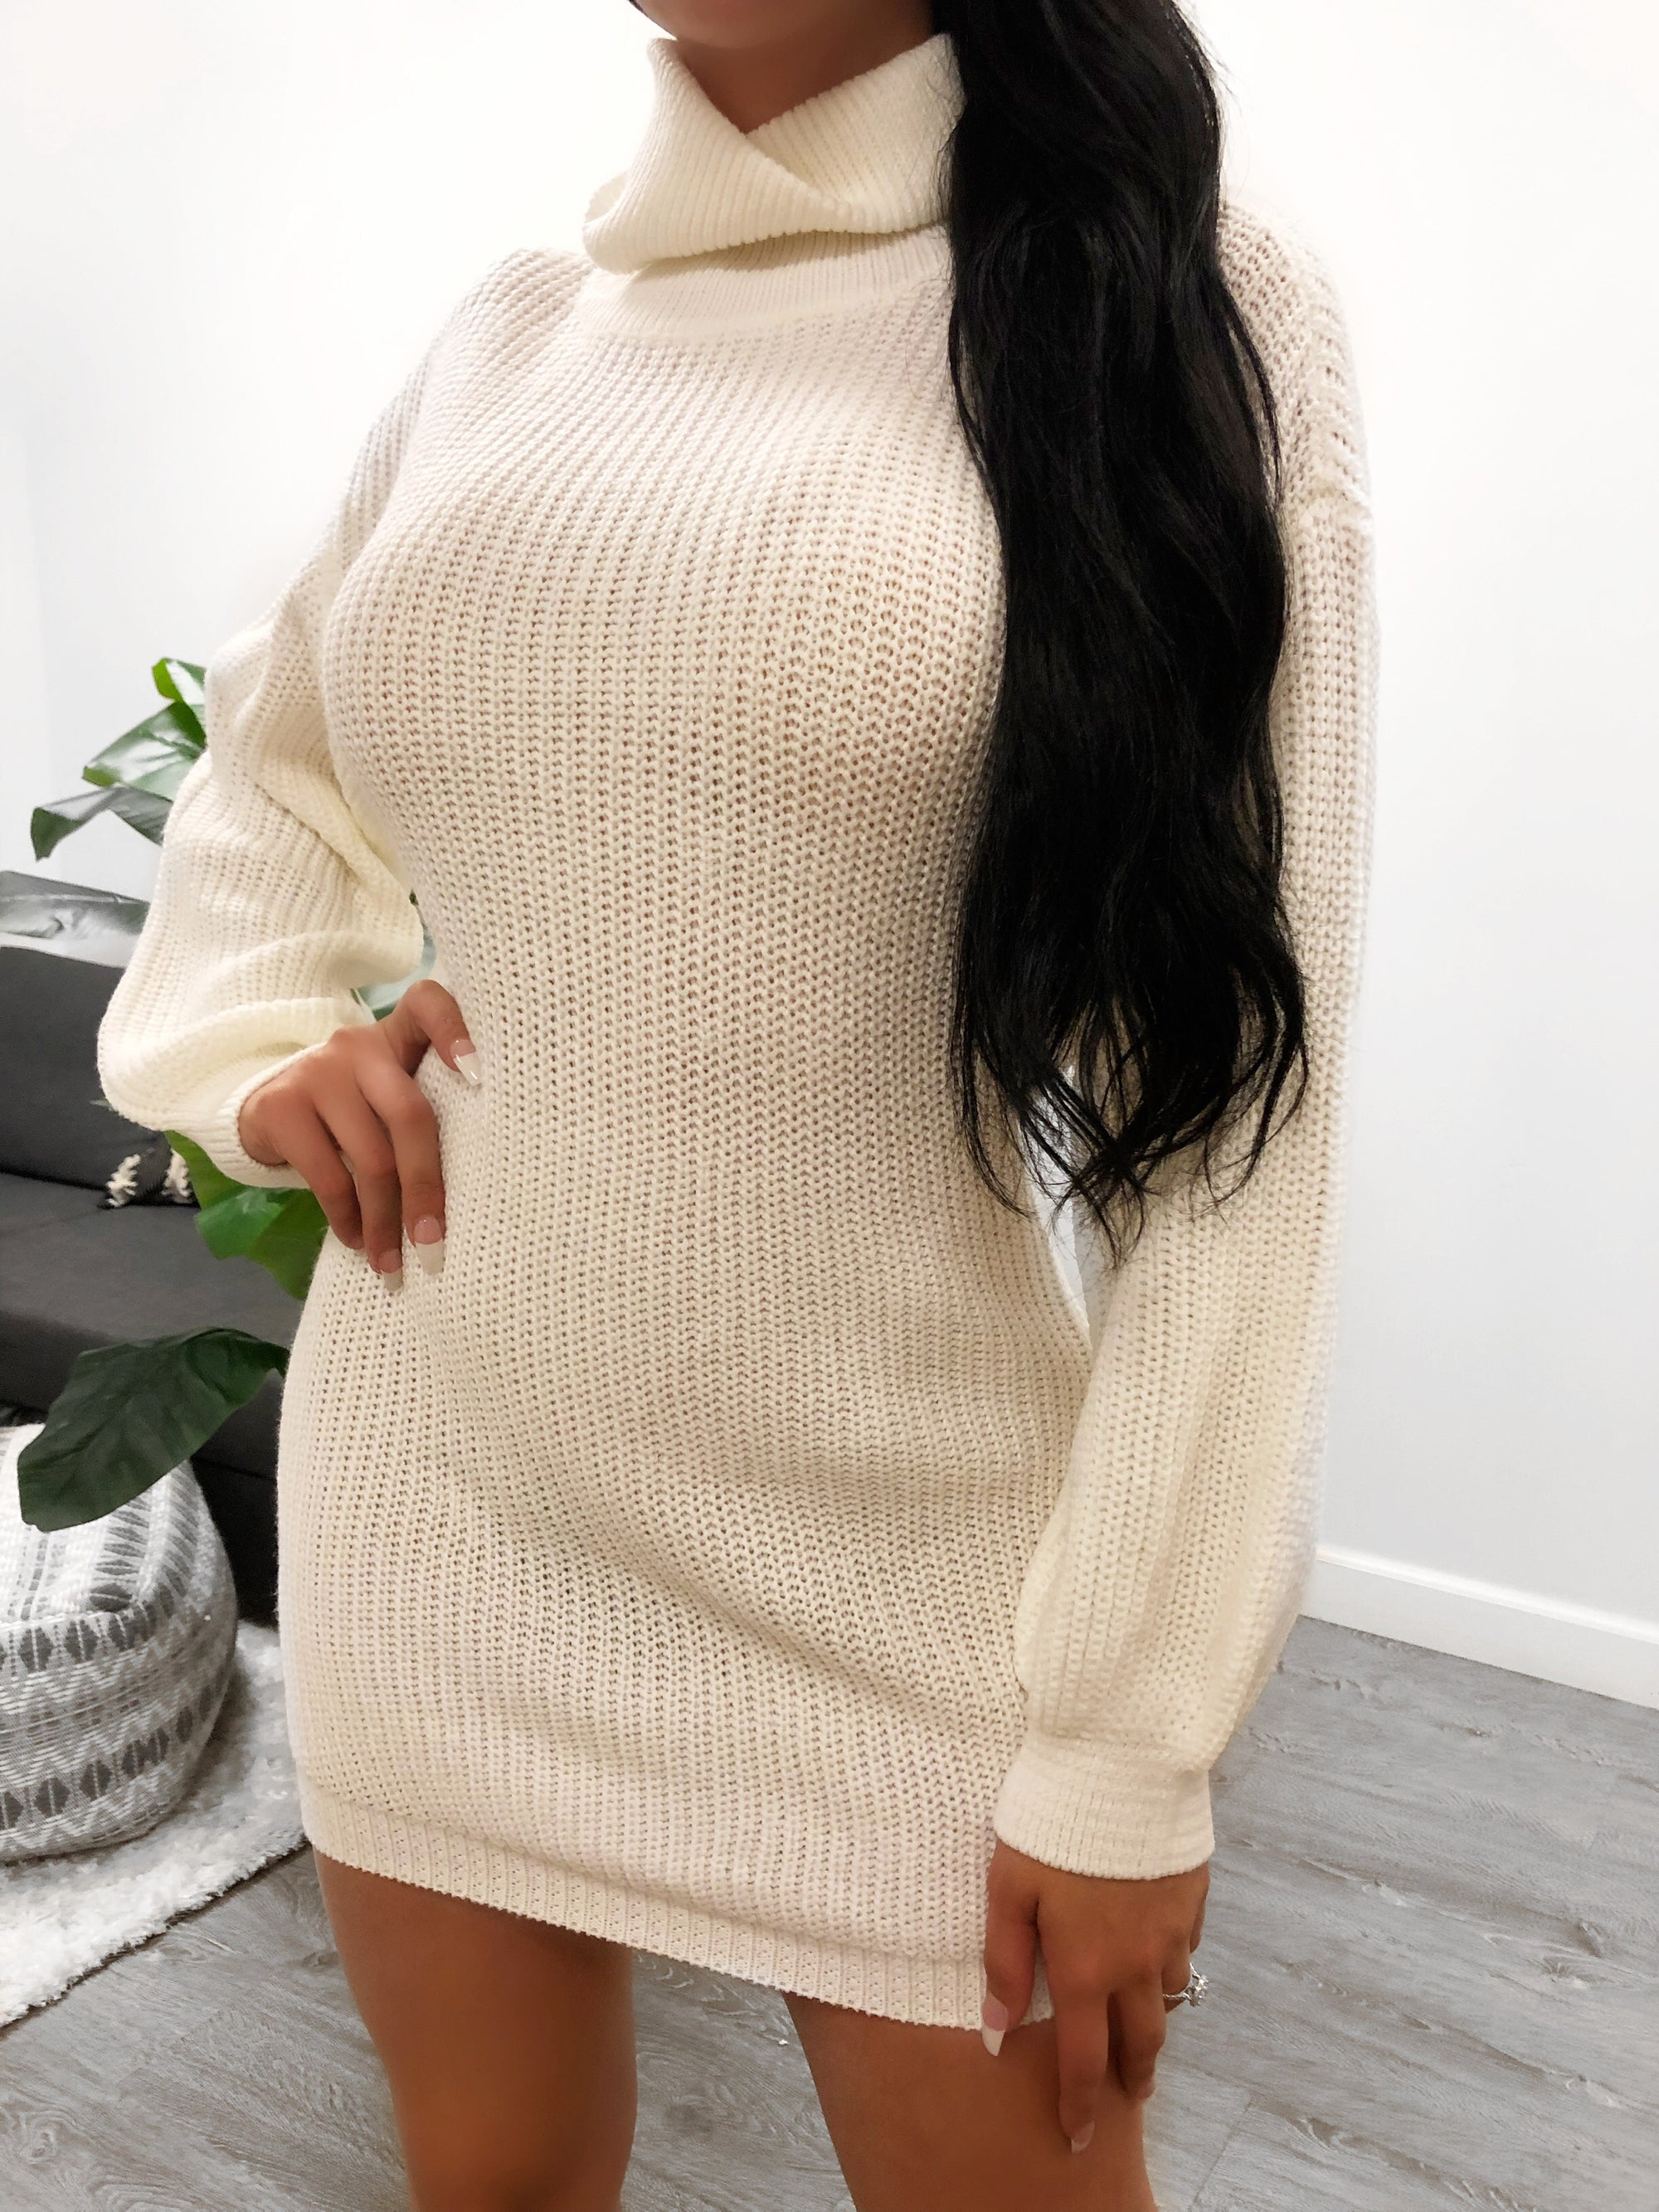 turtleneck top, long sleeves dress, length to mid thigh. loose fitting